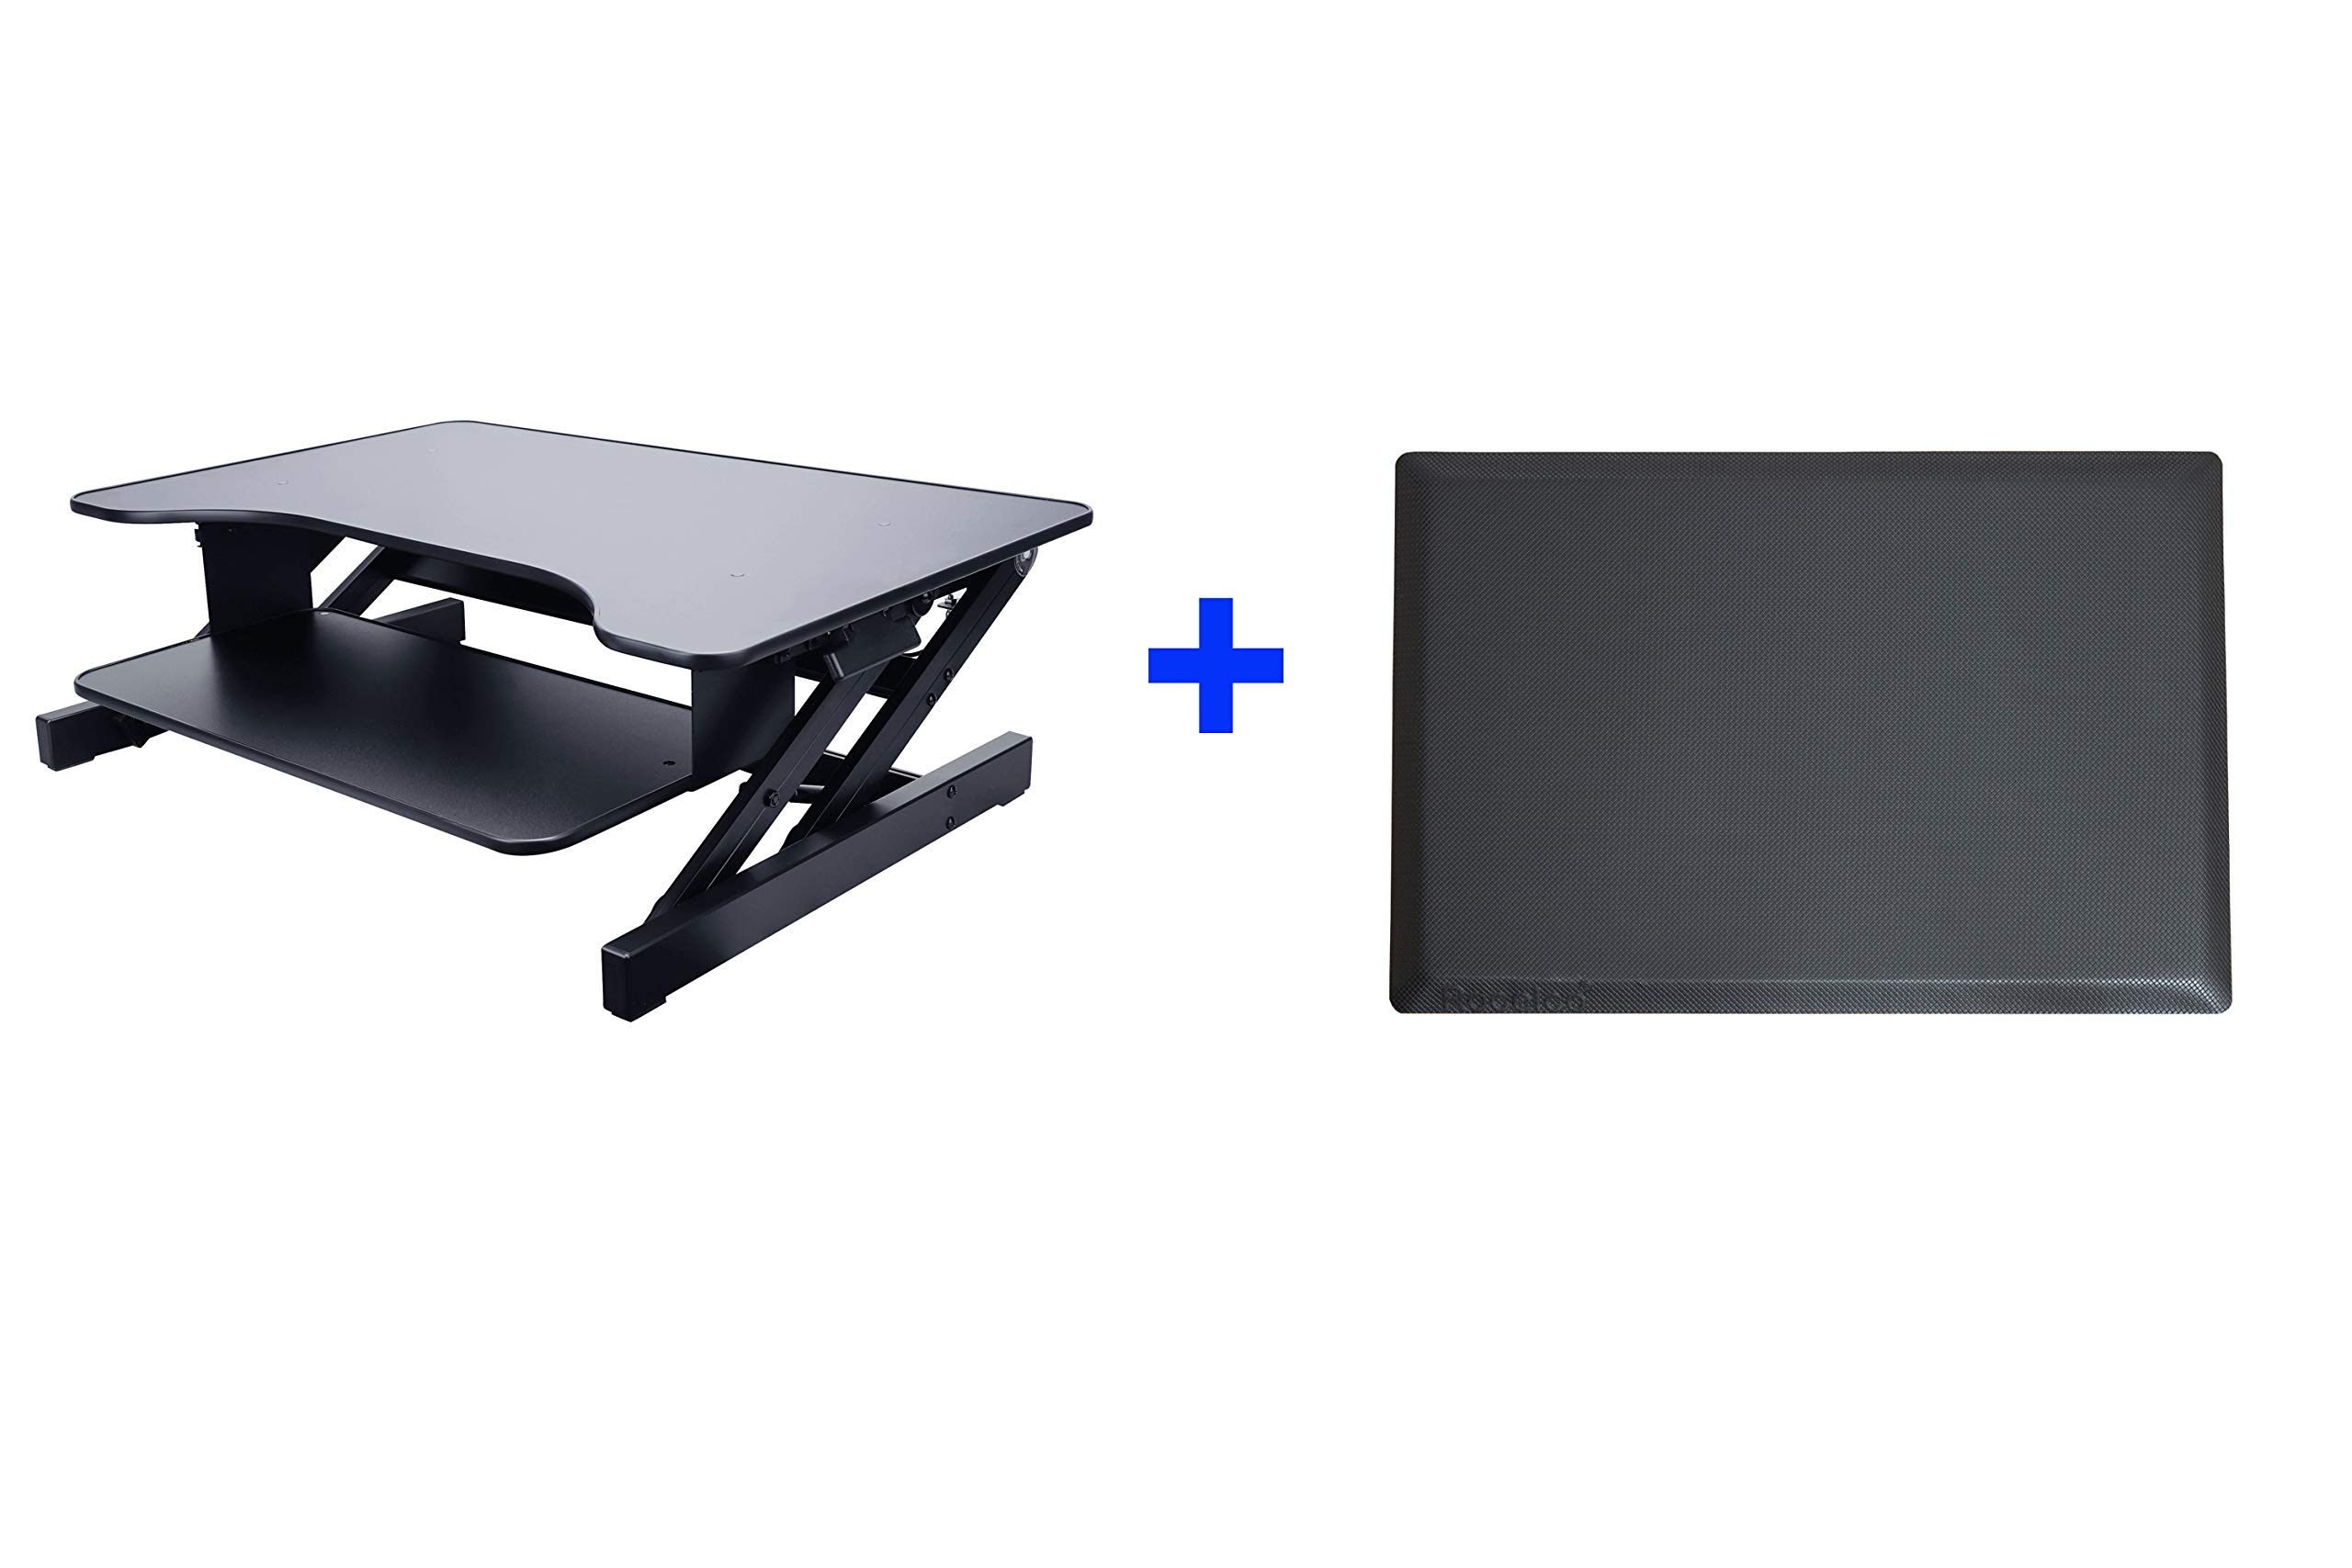 Rocelco 32'' Height Adjustable Standing Desk Converter Riser BUNDLE | Sit Stand Up Computer Workstation | Dual Monitor Retractable Keyboard Tray Gas Spring | Black with Anti Fatigue Mat (R ADRB-MAFM) by Rocelco